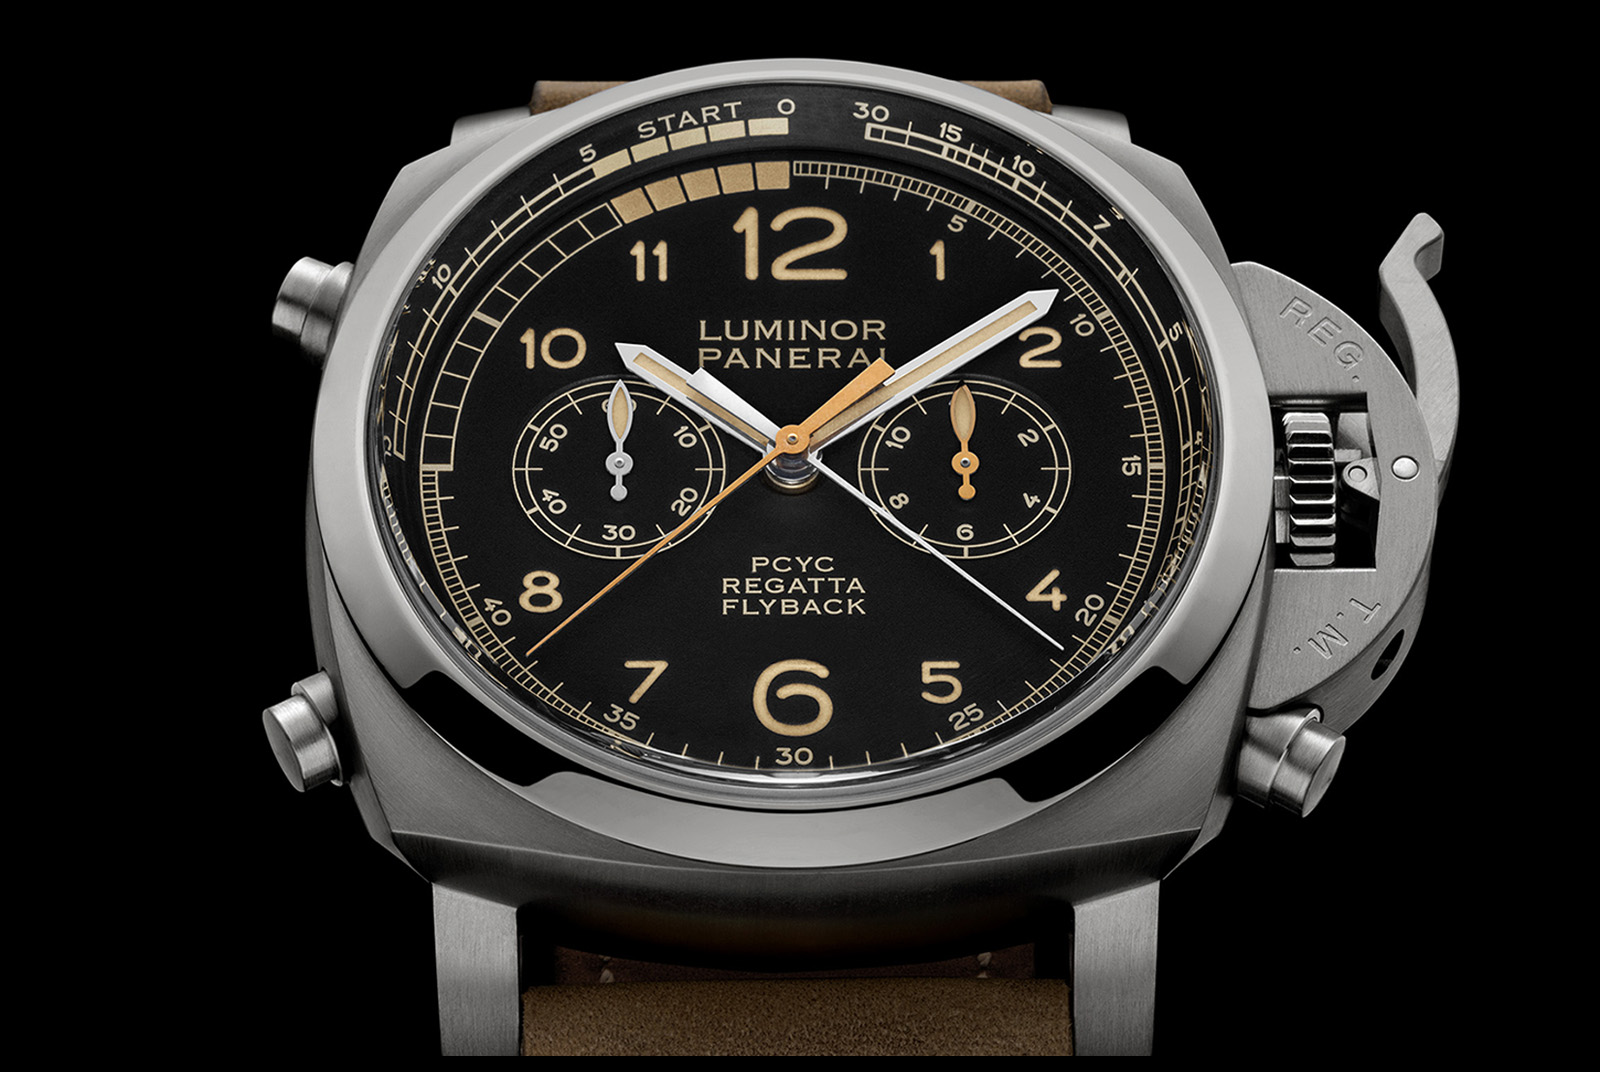 Panerai Luminor 1950 PCYC Regatta 3 Days Chrono Regatta Flyback Automatic Pam652